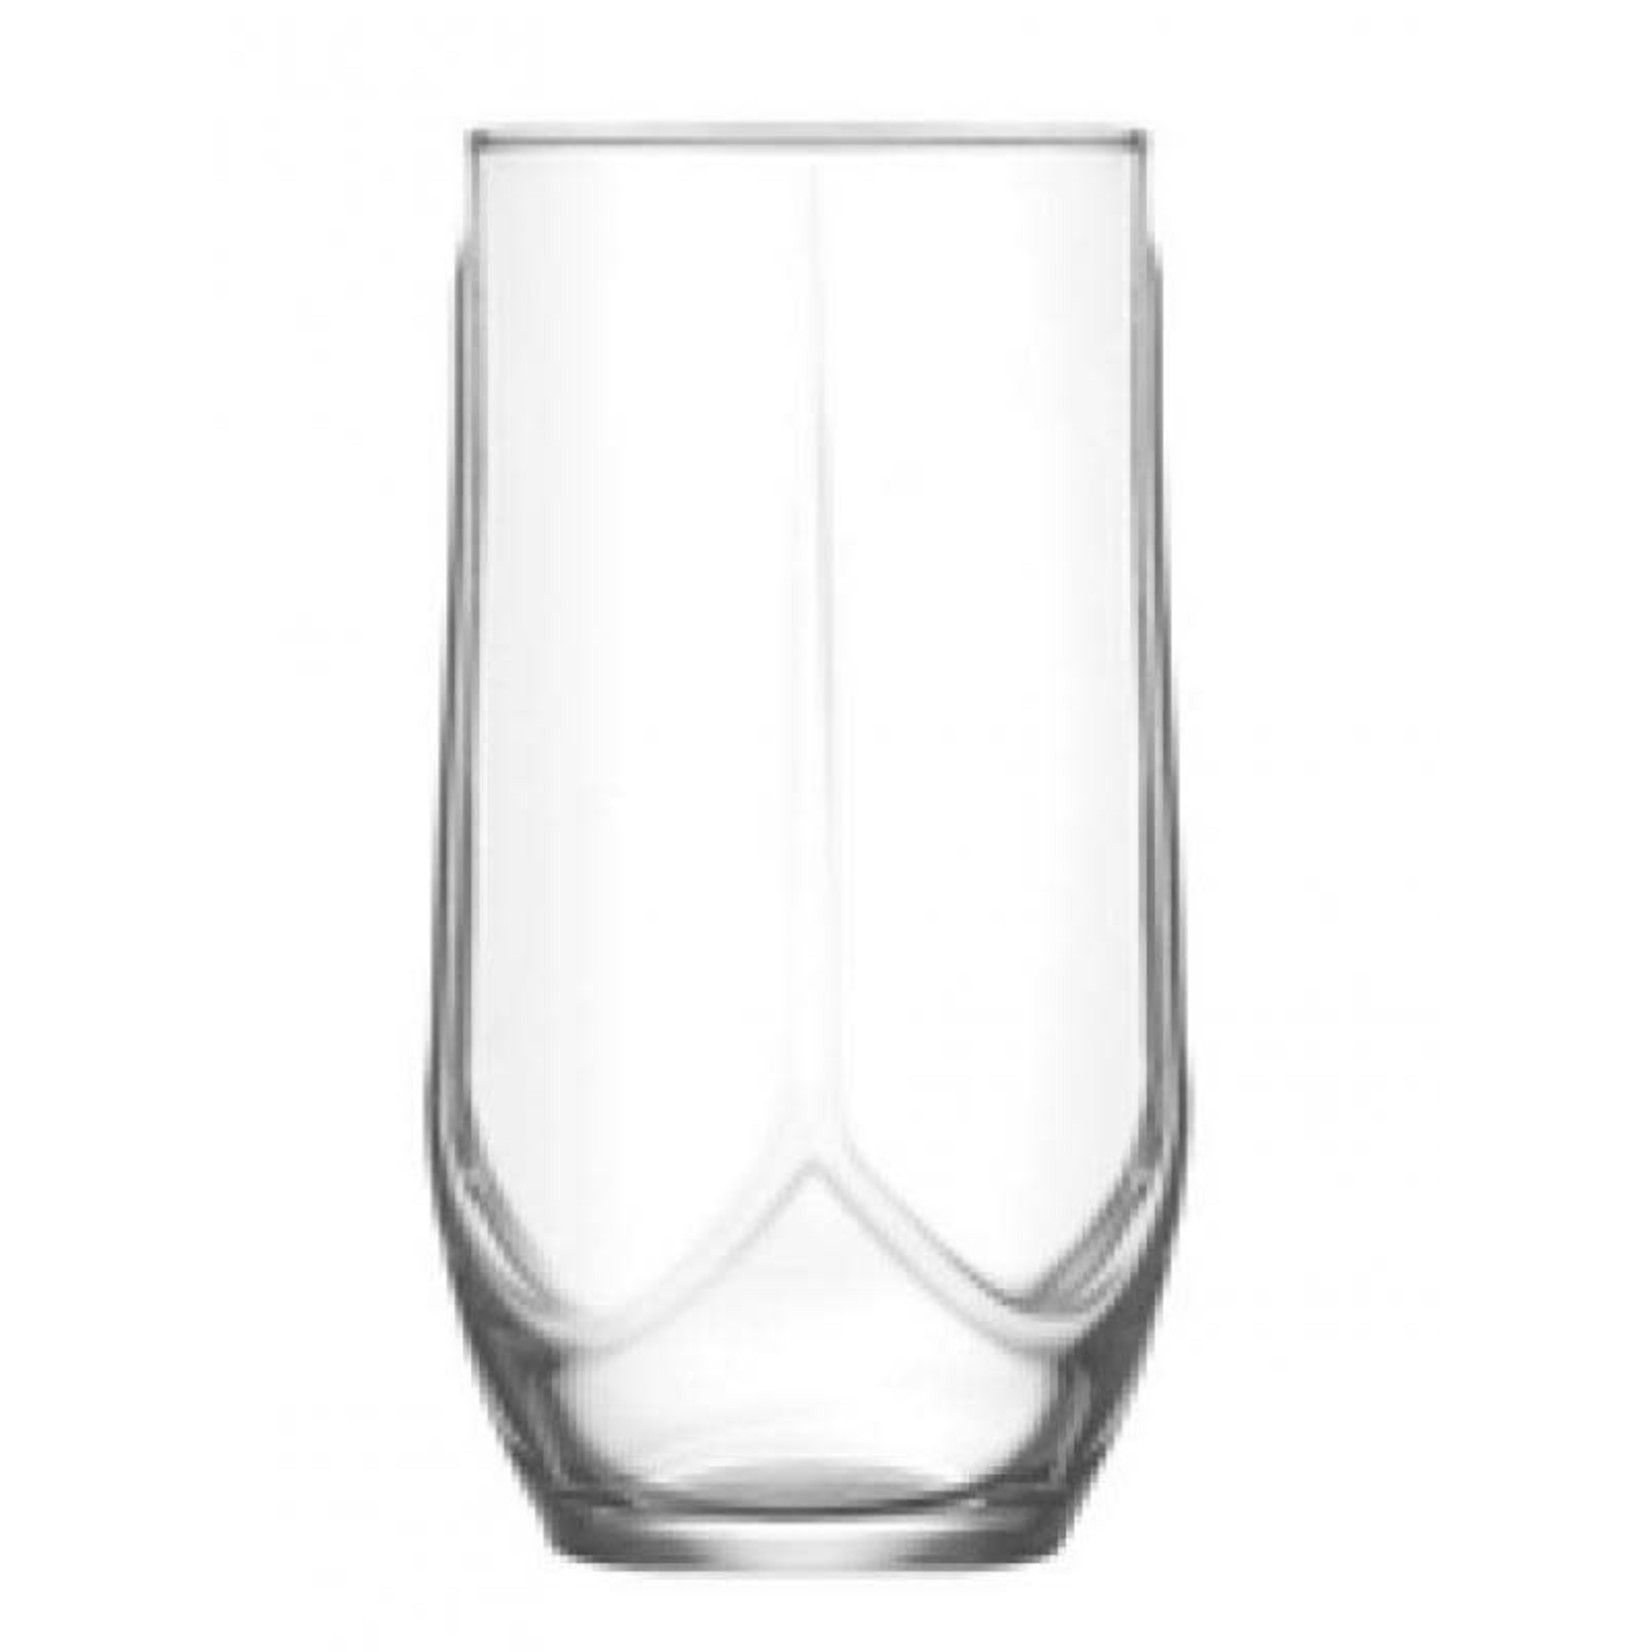 AZN25  13.75 OZ Drinking Glass,Pack of 6